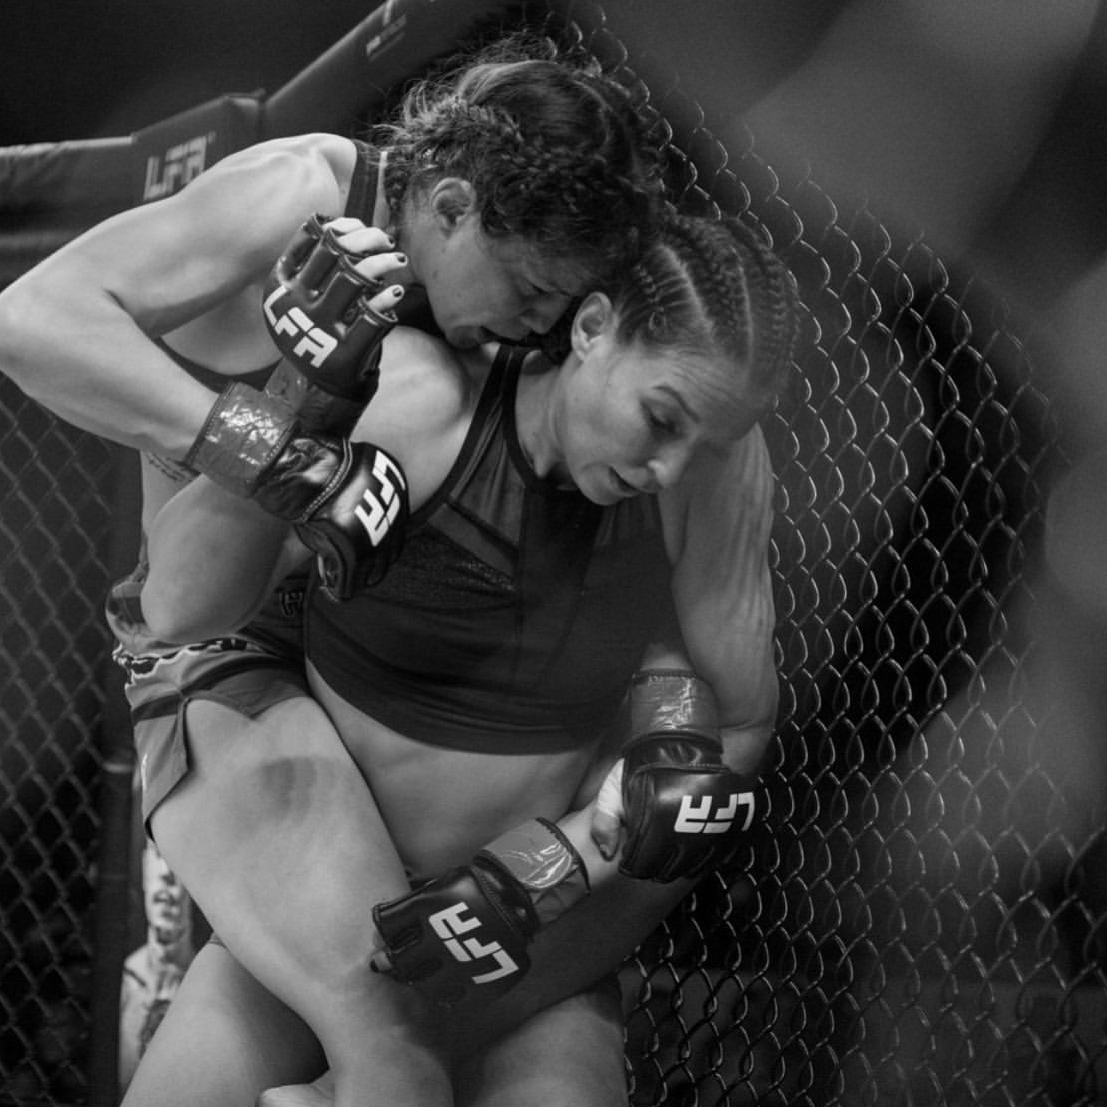 Lisa Mauldin - After signing a multi-fight deal with LFA, she made her debut against hometown favorite Kaytlin Neil. After 3 rounds of back and forth action, Lisa scored enough strikes and takedowns to secure the split decision victory.